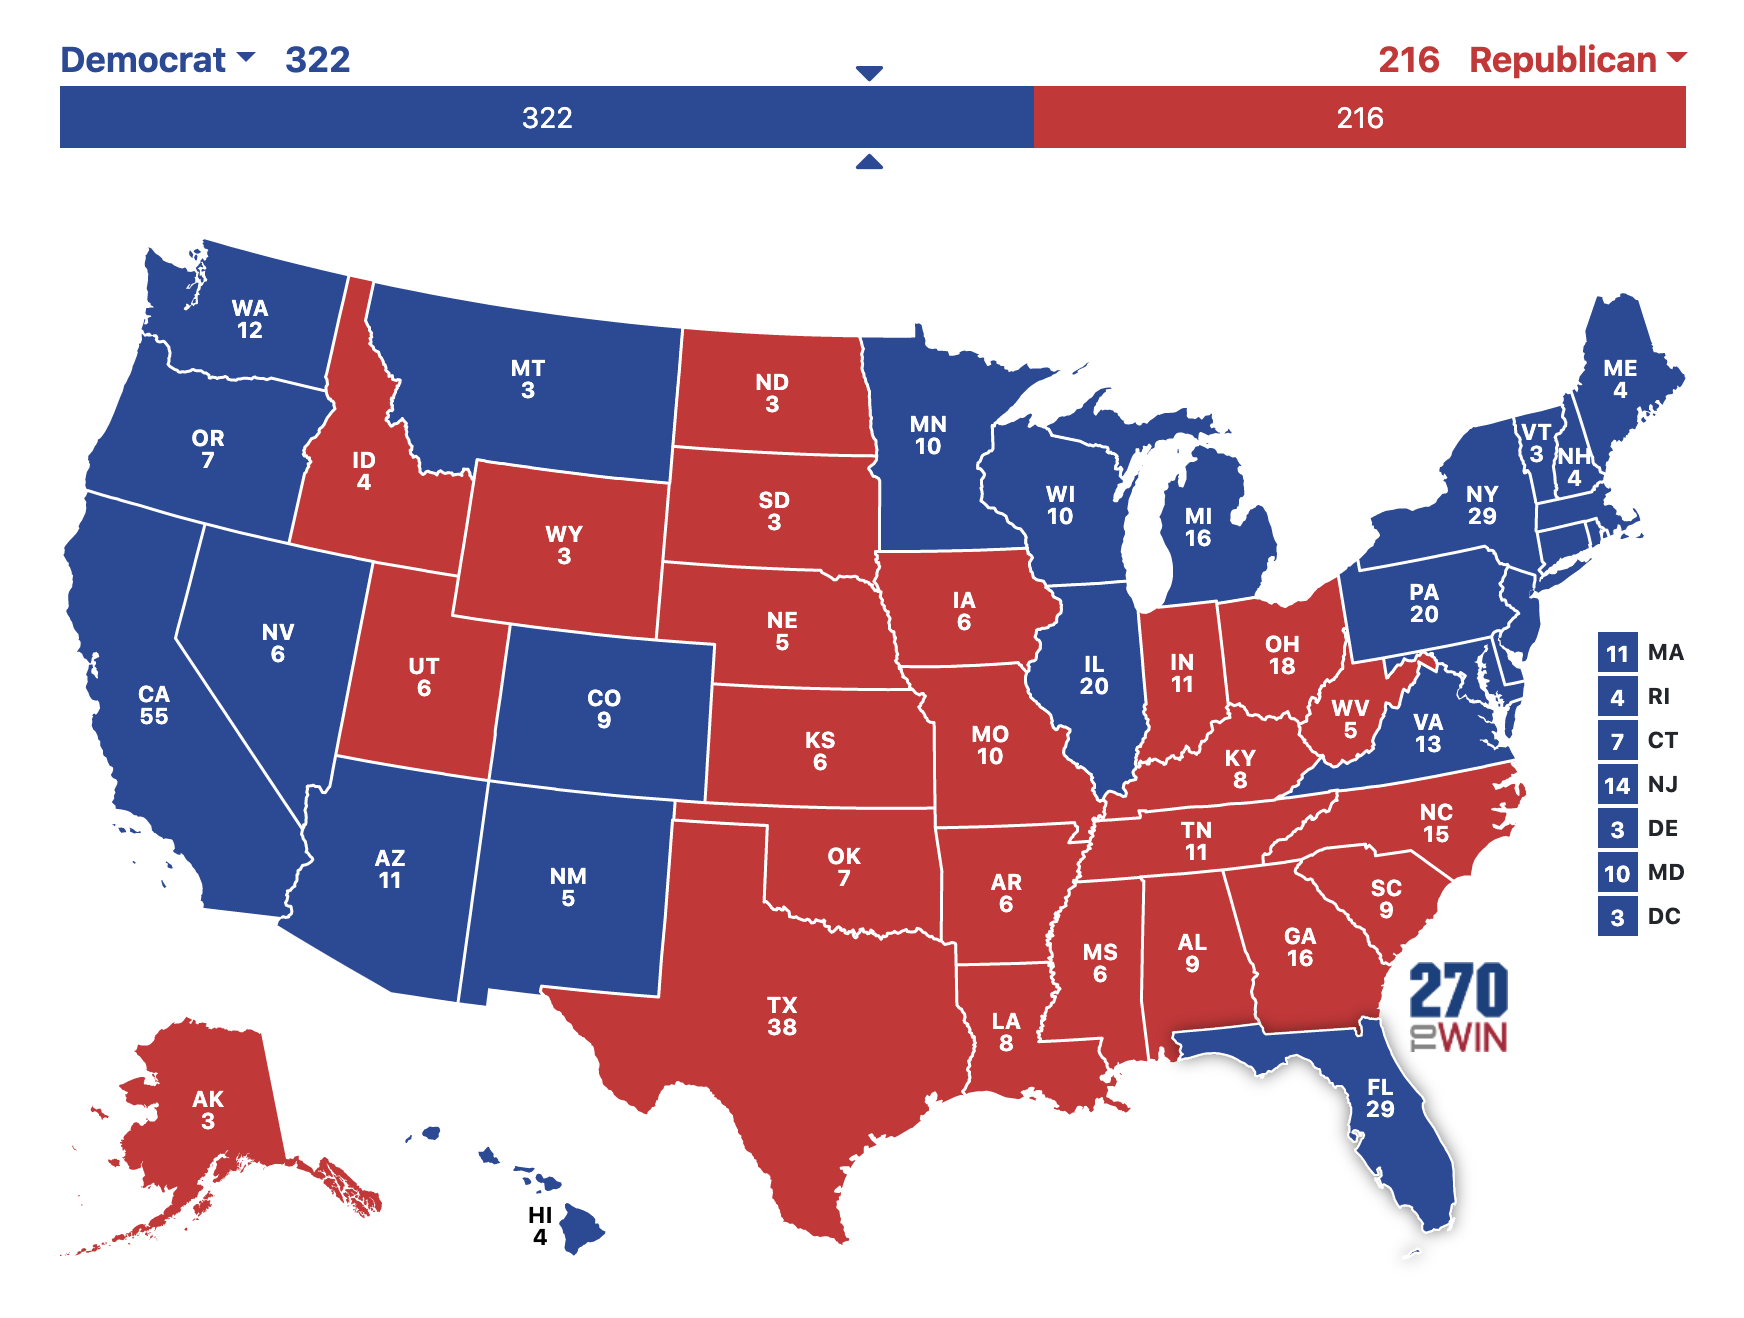 2020 U.S. Presidential Election (A New Renaissance)